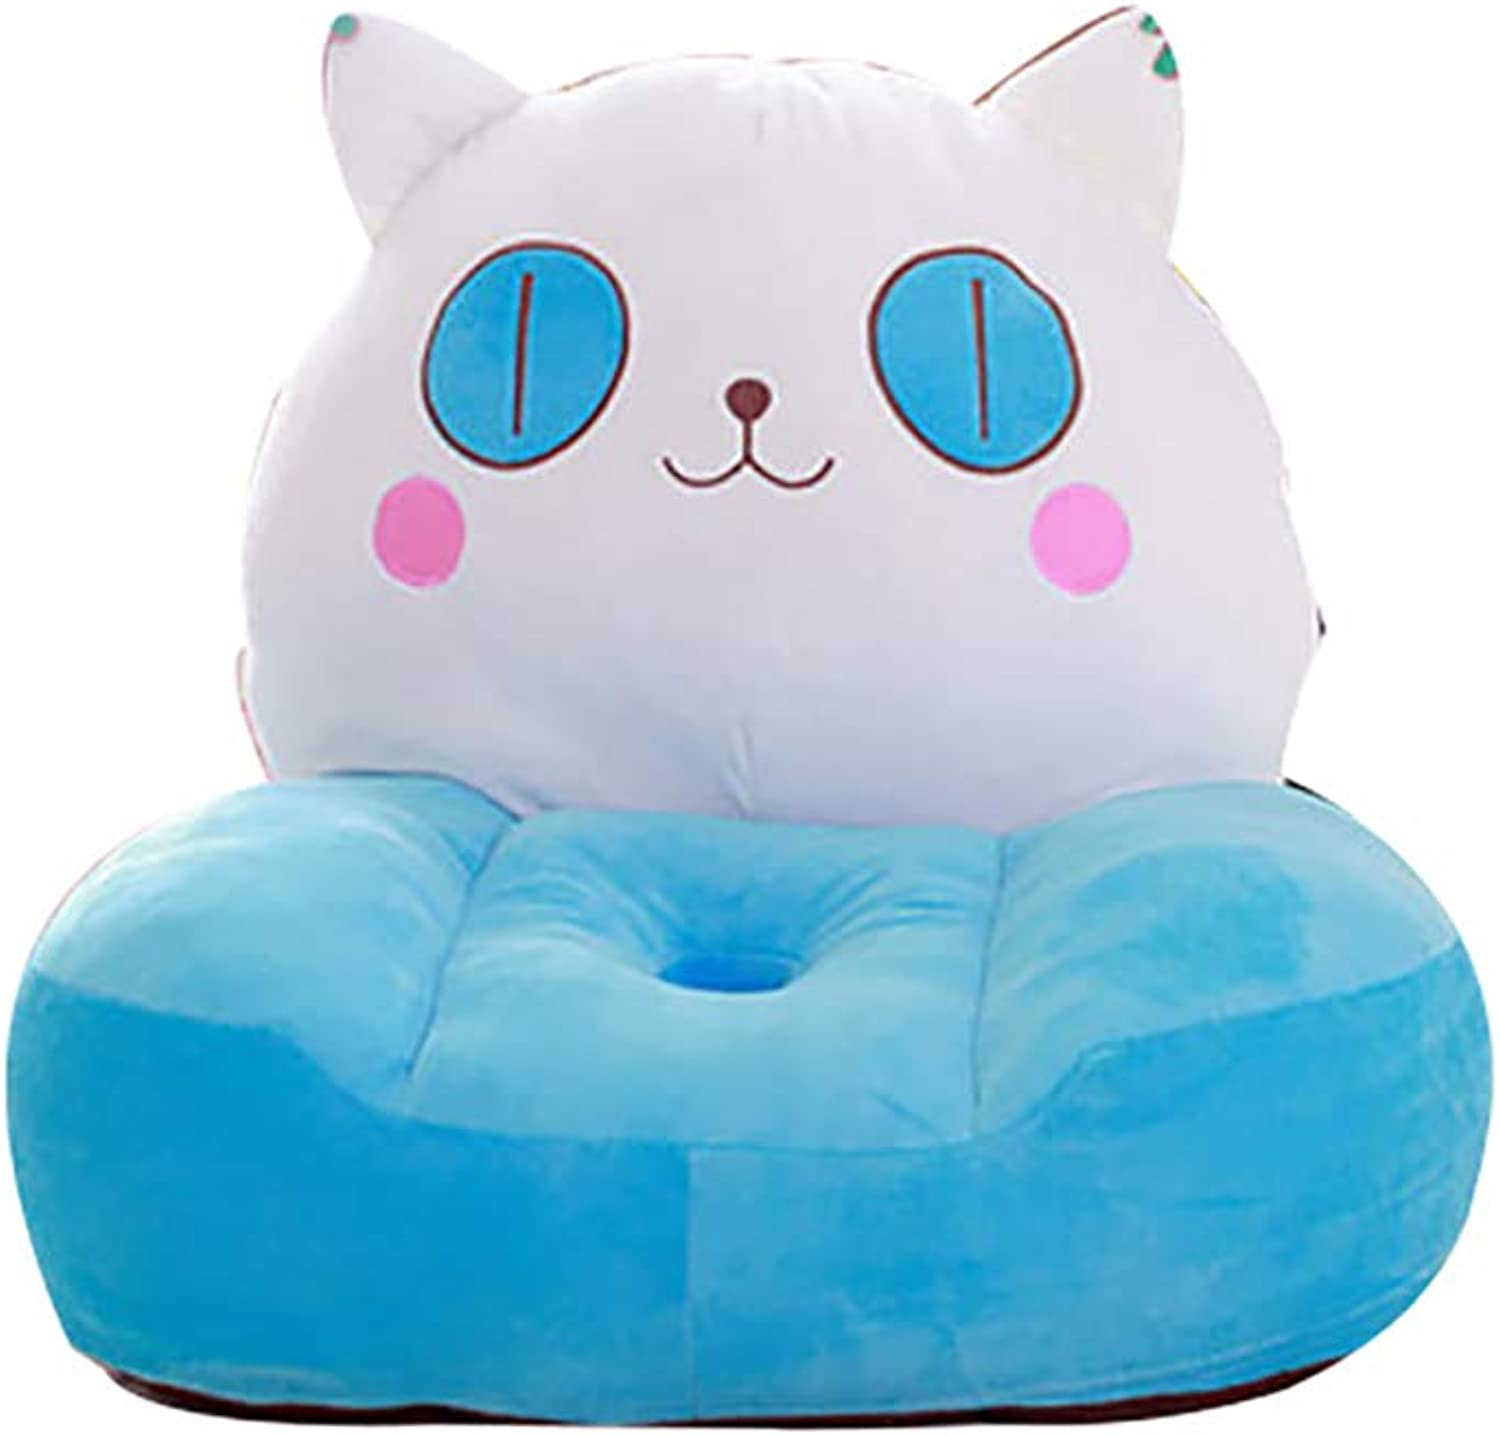 Kids Photo Props Mini Sofa, Soft Plush Chair Cute Cartoon Cushion Detachable Washable Breathable Couch for Gaming Room-cat